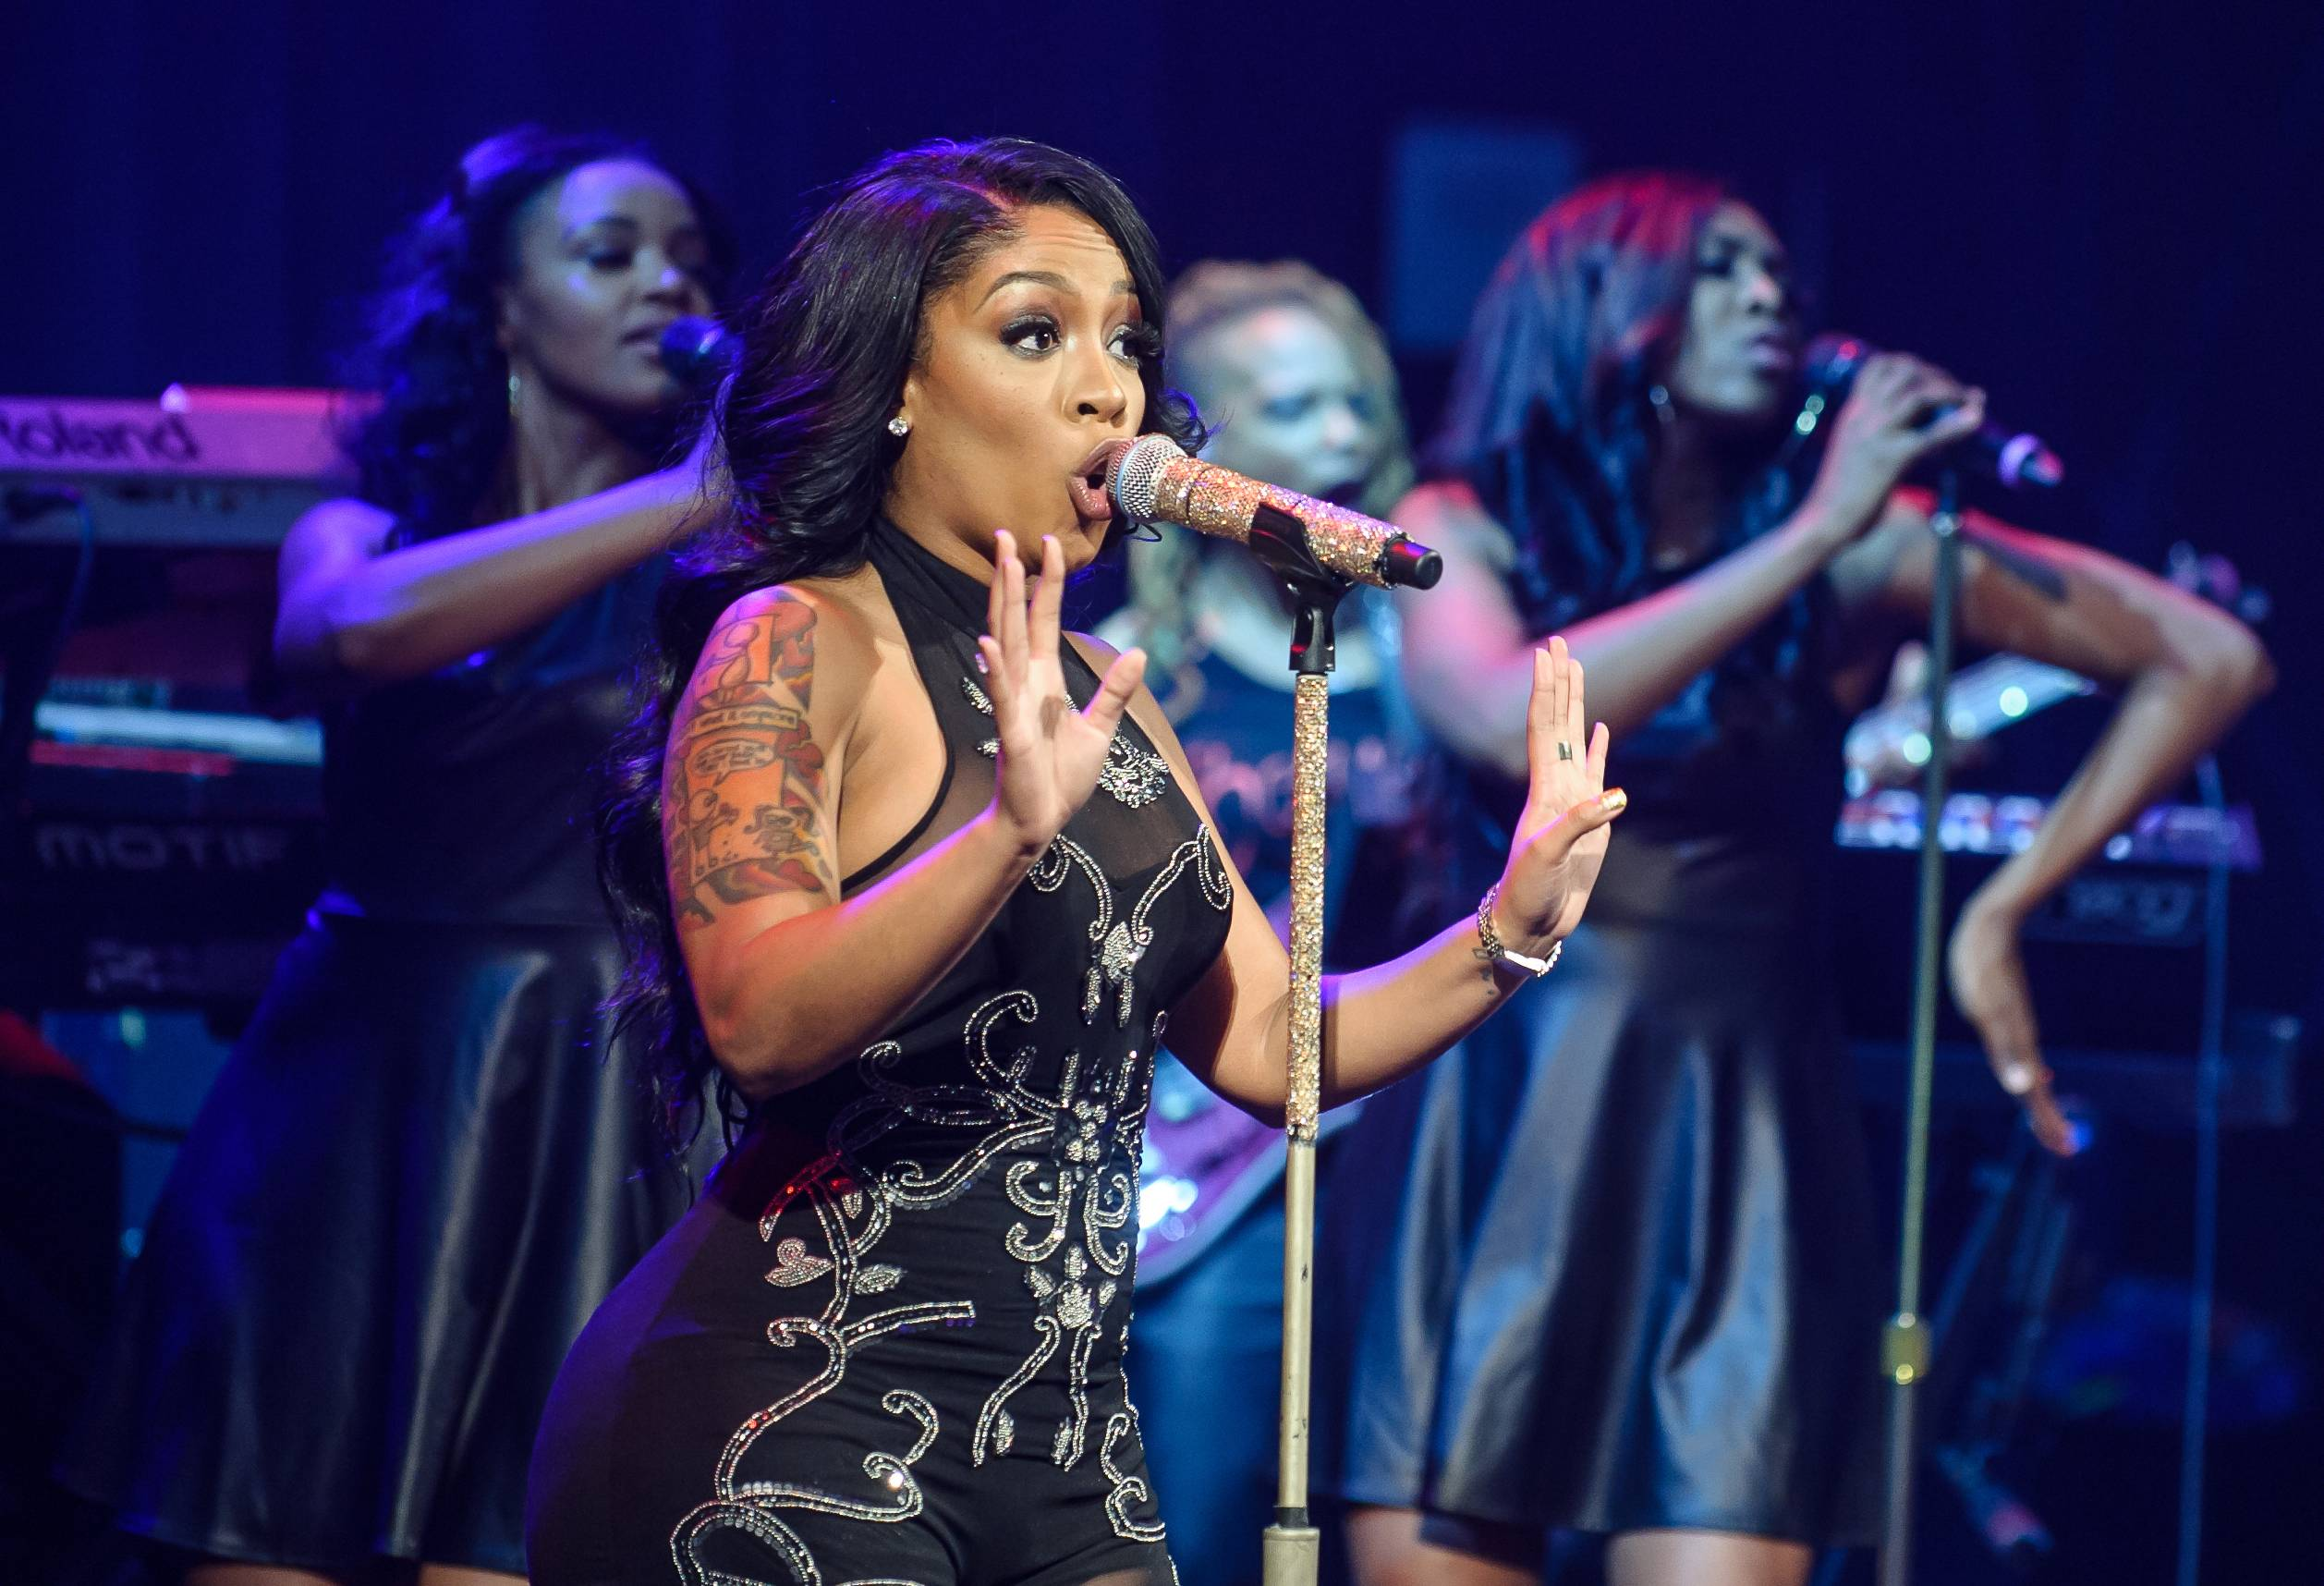 K. Michelle  - Anybody wanna buy a heart? The vivacious K. Michelle will likely convince you that you do. Once you get to listen to her lyrical heartbreak mixed with blaring vocal runs, you'll be thoroughly surprised at her take on the rollercoaster ride of love. (Photo: Kyle Gustafson / For The Washington Post via Getty Images)